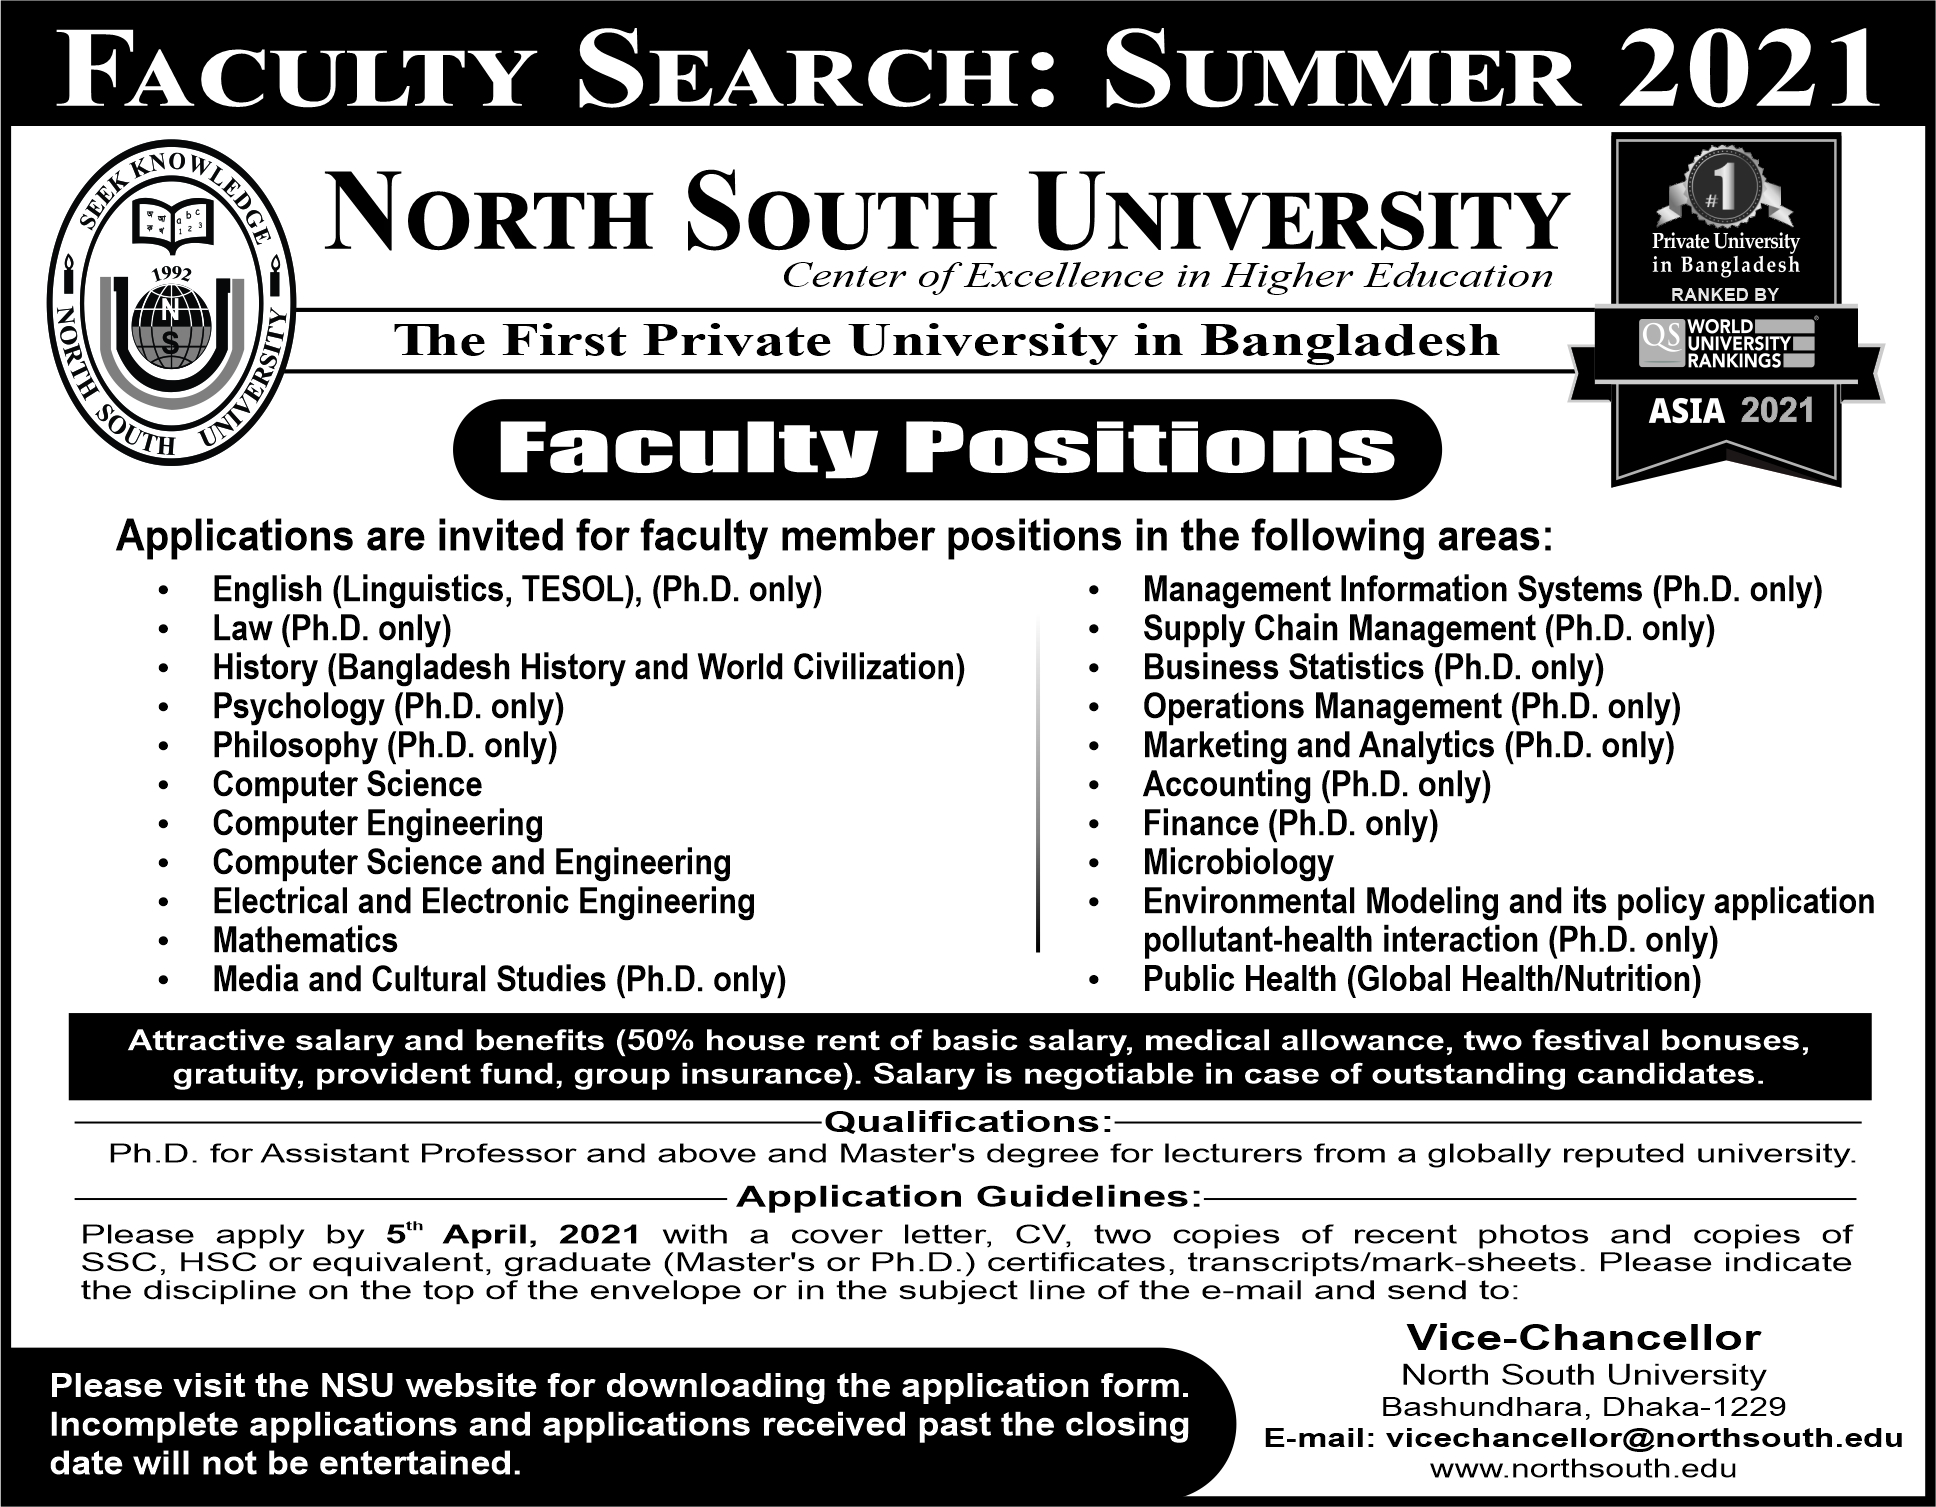 NSU Faculty Search For Summer 2021